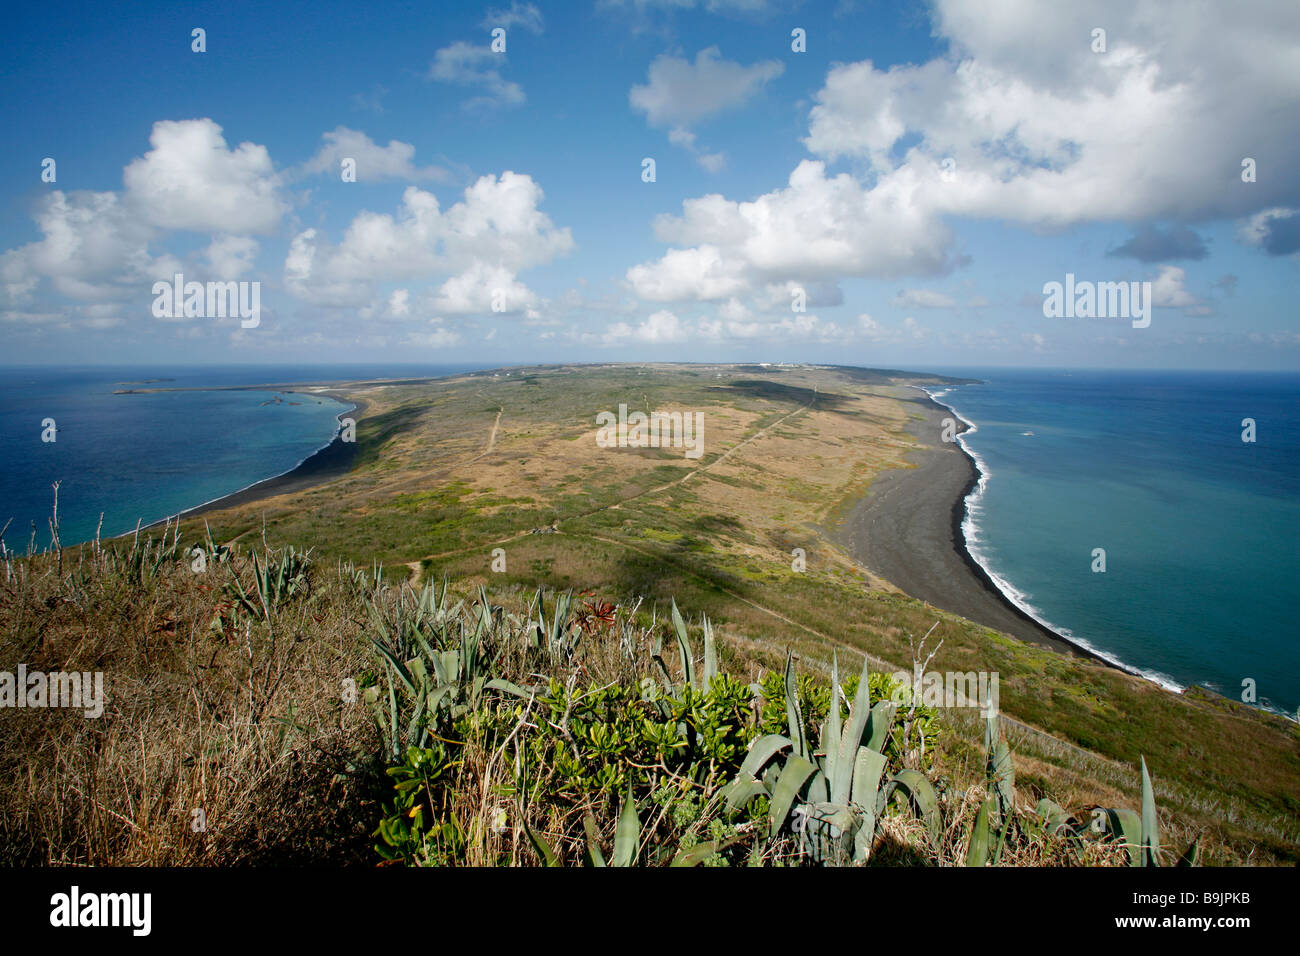 view-of-iwo-jima-island-from-the-summit-